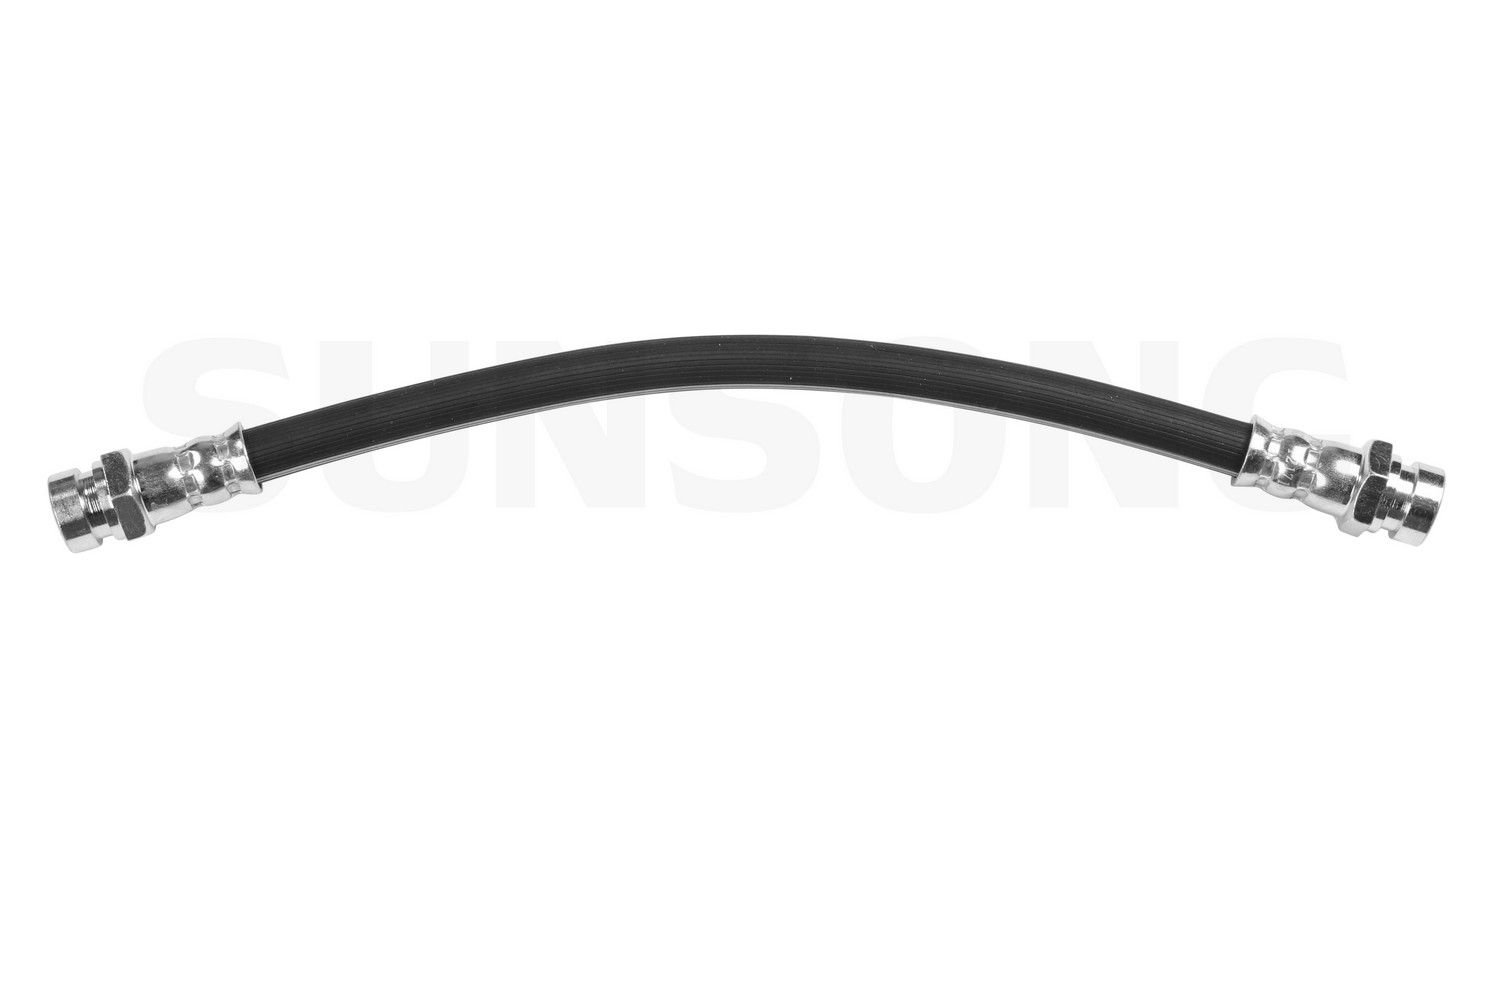 Sunsong 2203301 Brake Hydraulic Hose